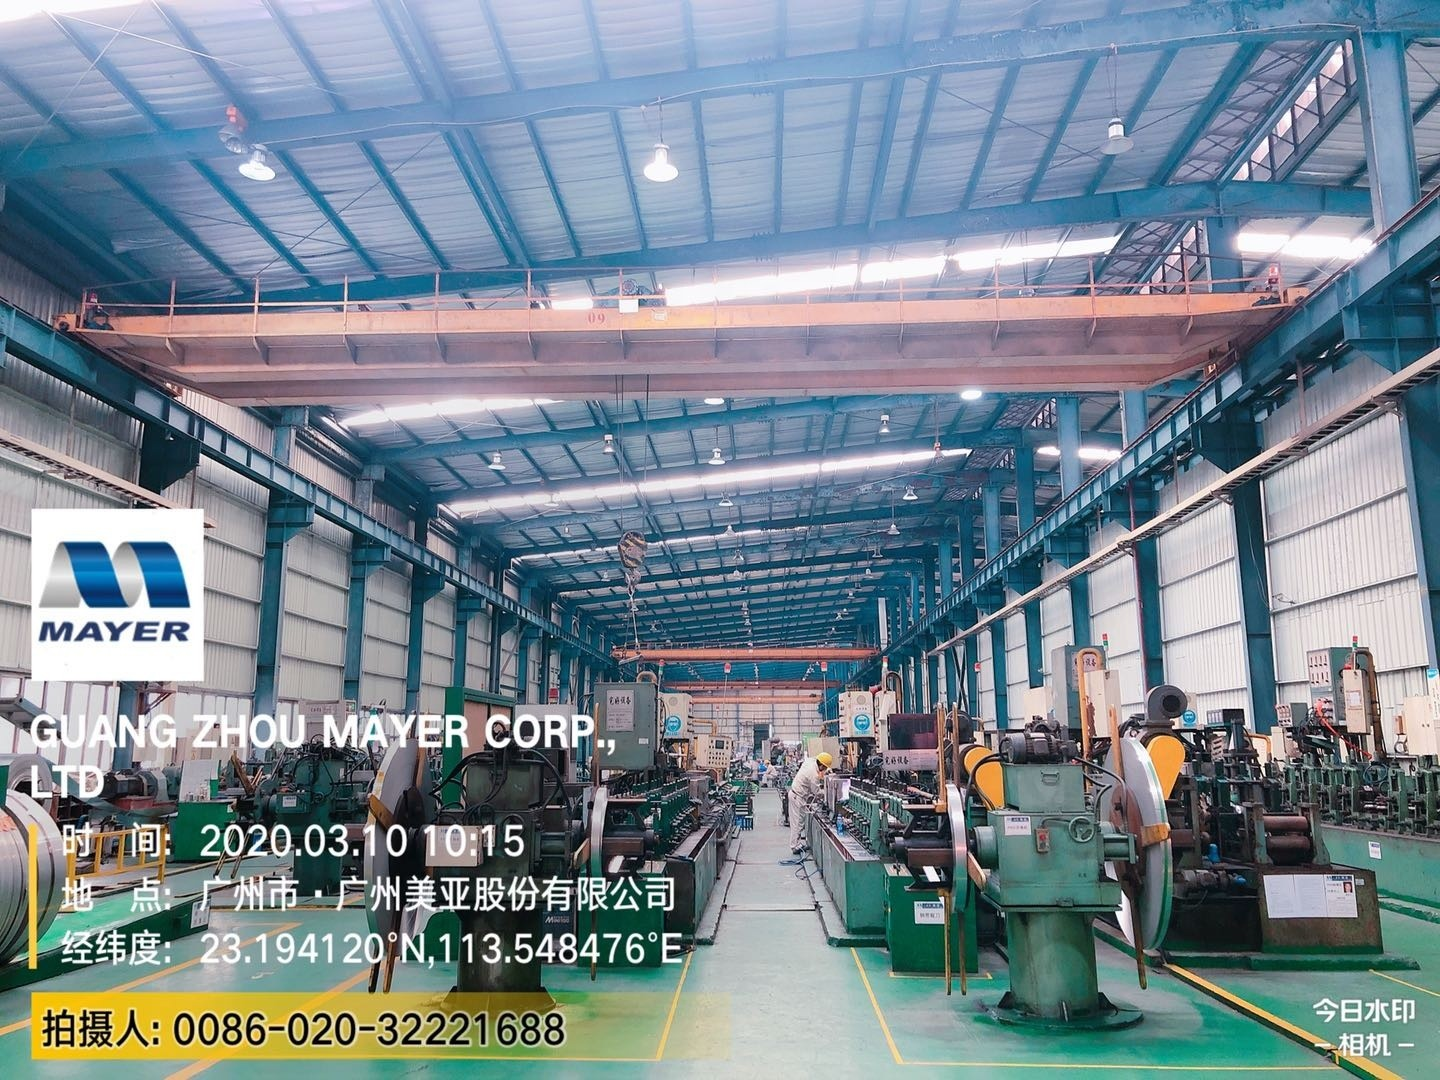 High quality no leakage risk stainless steel pipe and press tee fitting application on pine connection